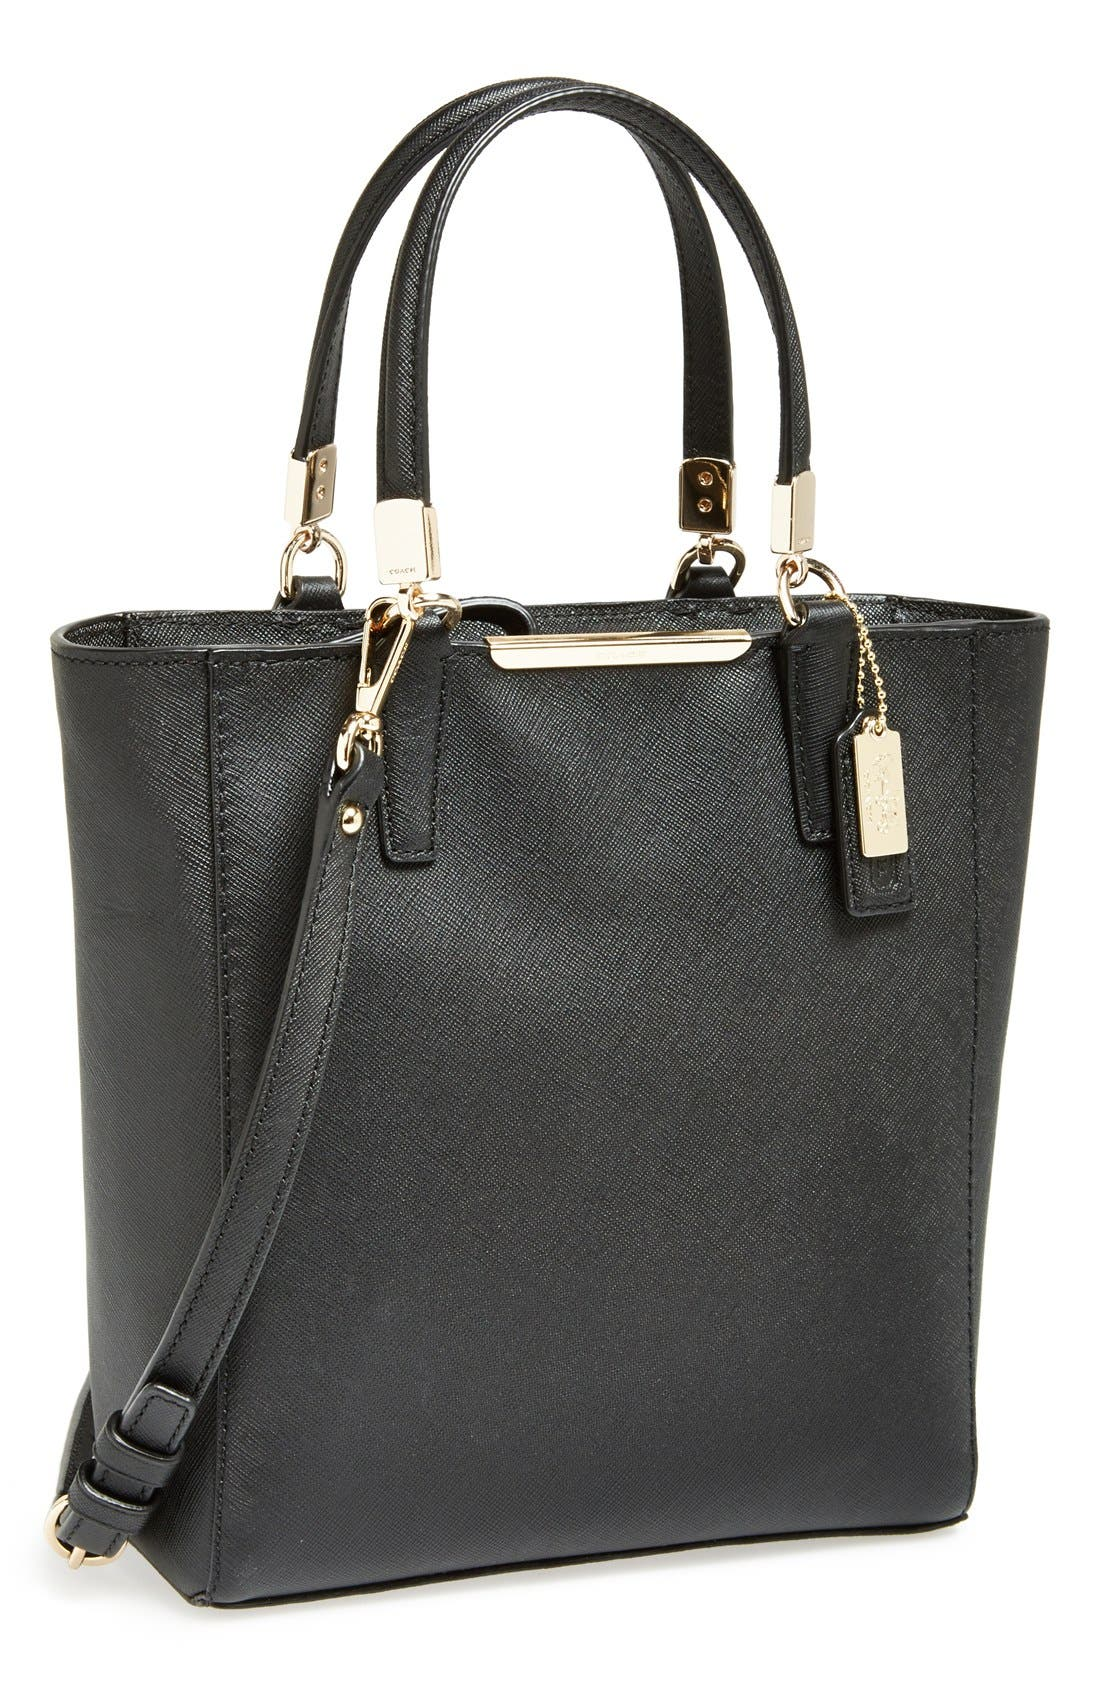 Main Image - COACH 'Madison' Saffiano Leather Tote